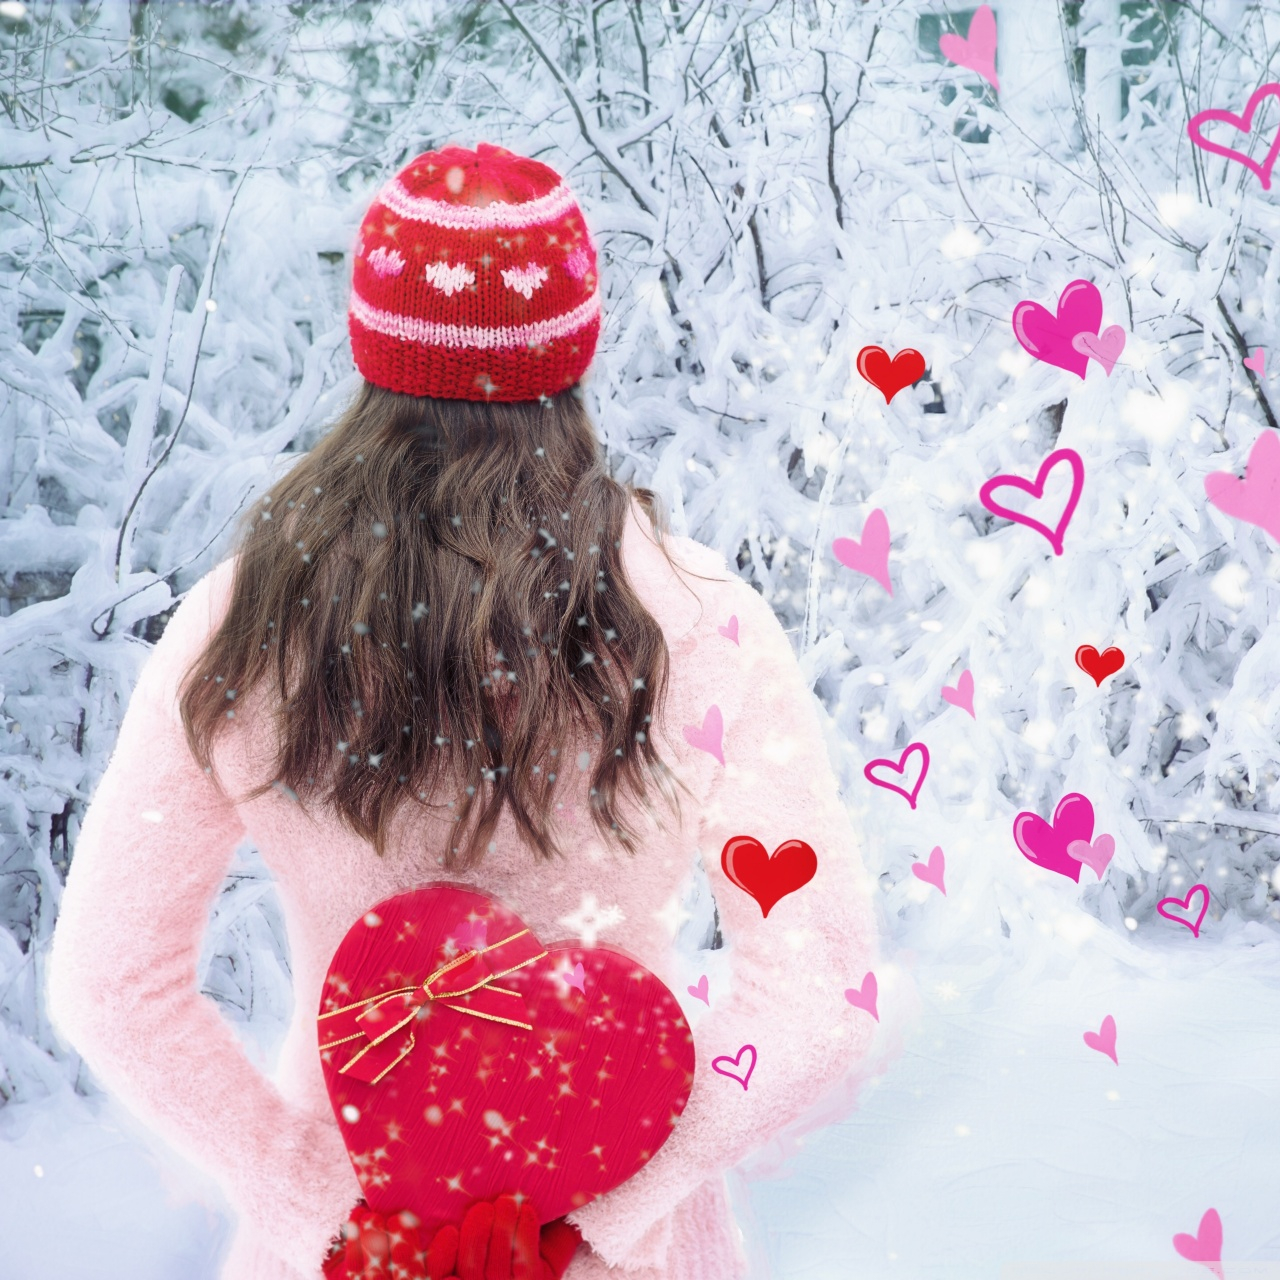 happy valentines day background wallpapers